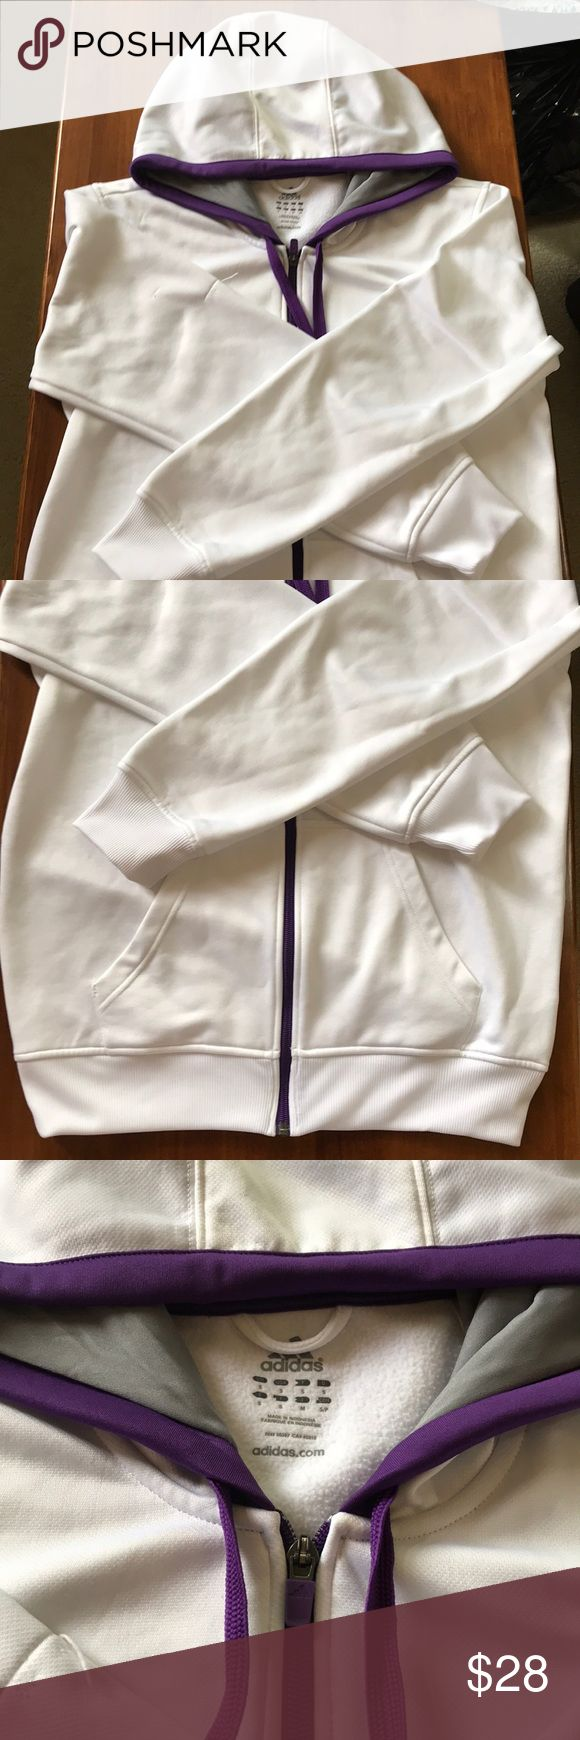 White Adidas Zipped Up Hoodie White adidas zip up with hood. Has purple accents and fleece lining on the inside. Some piling and loose threading on the sleeve. Other wise in great used condition. adidas Shirts Sweatshirts & Hoodies